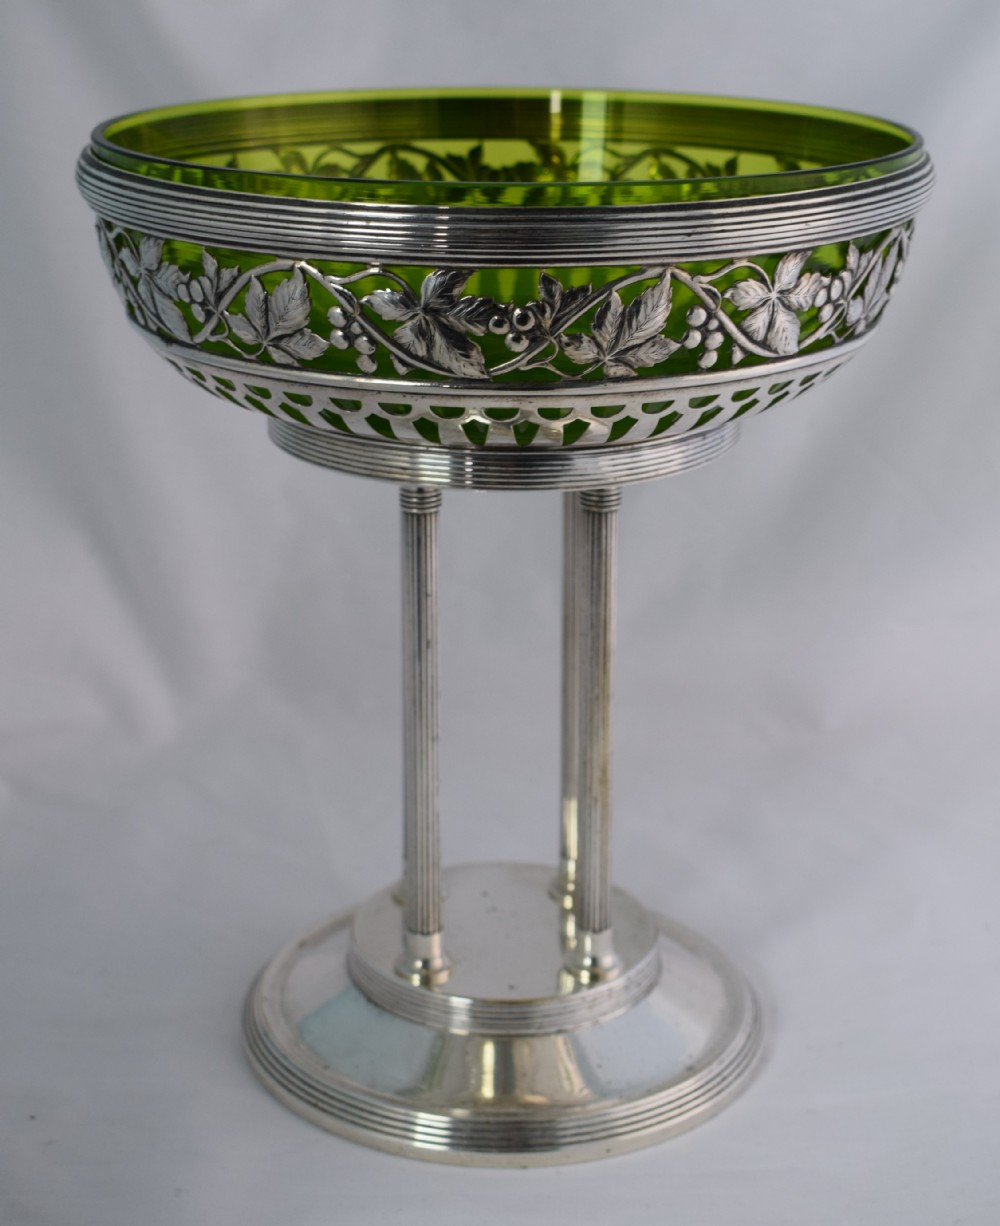 Centerpiece. Silver plate with a green glass liner.